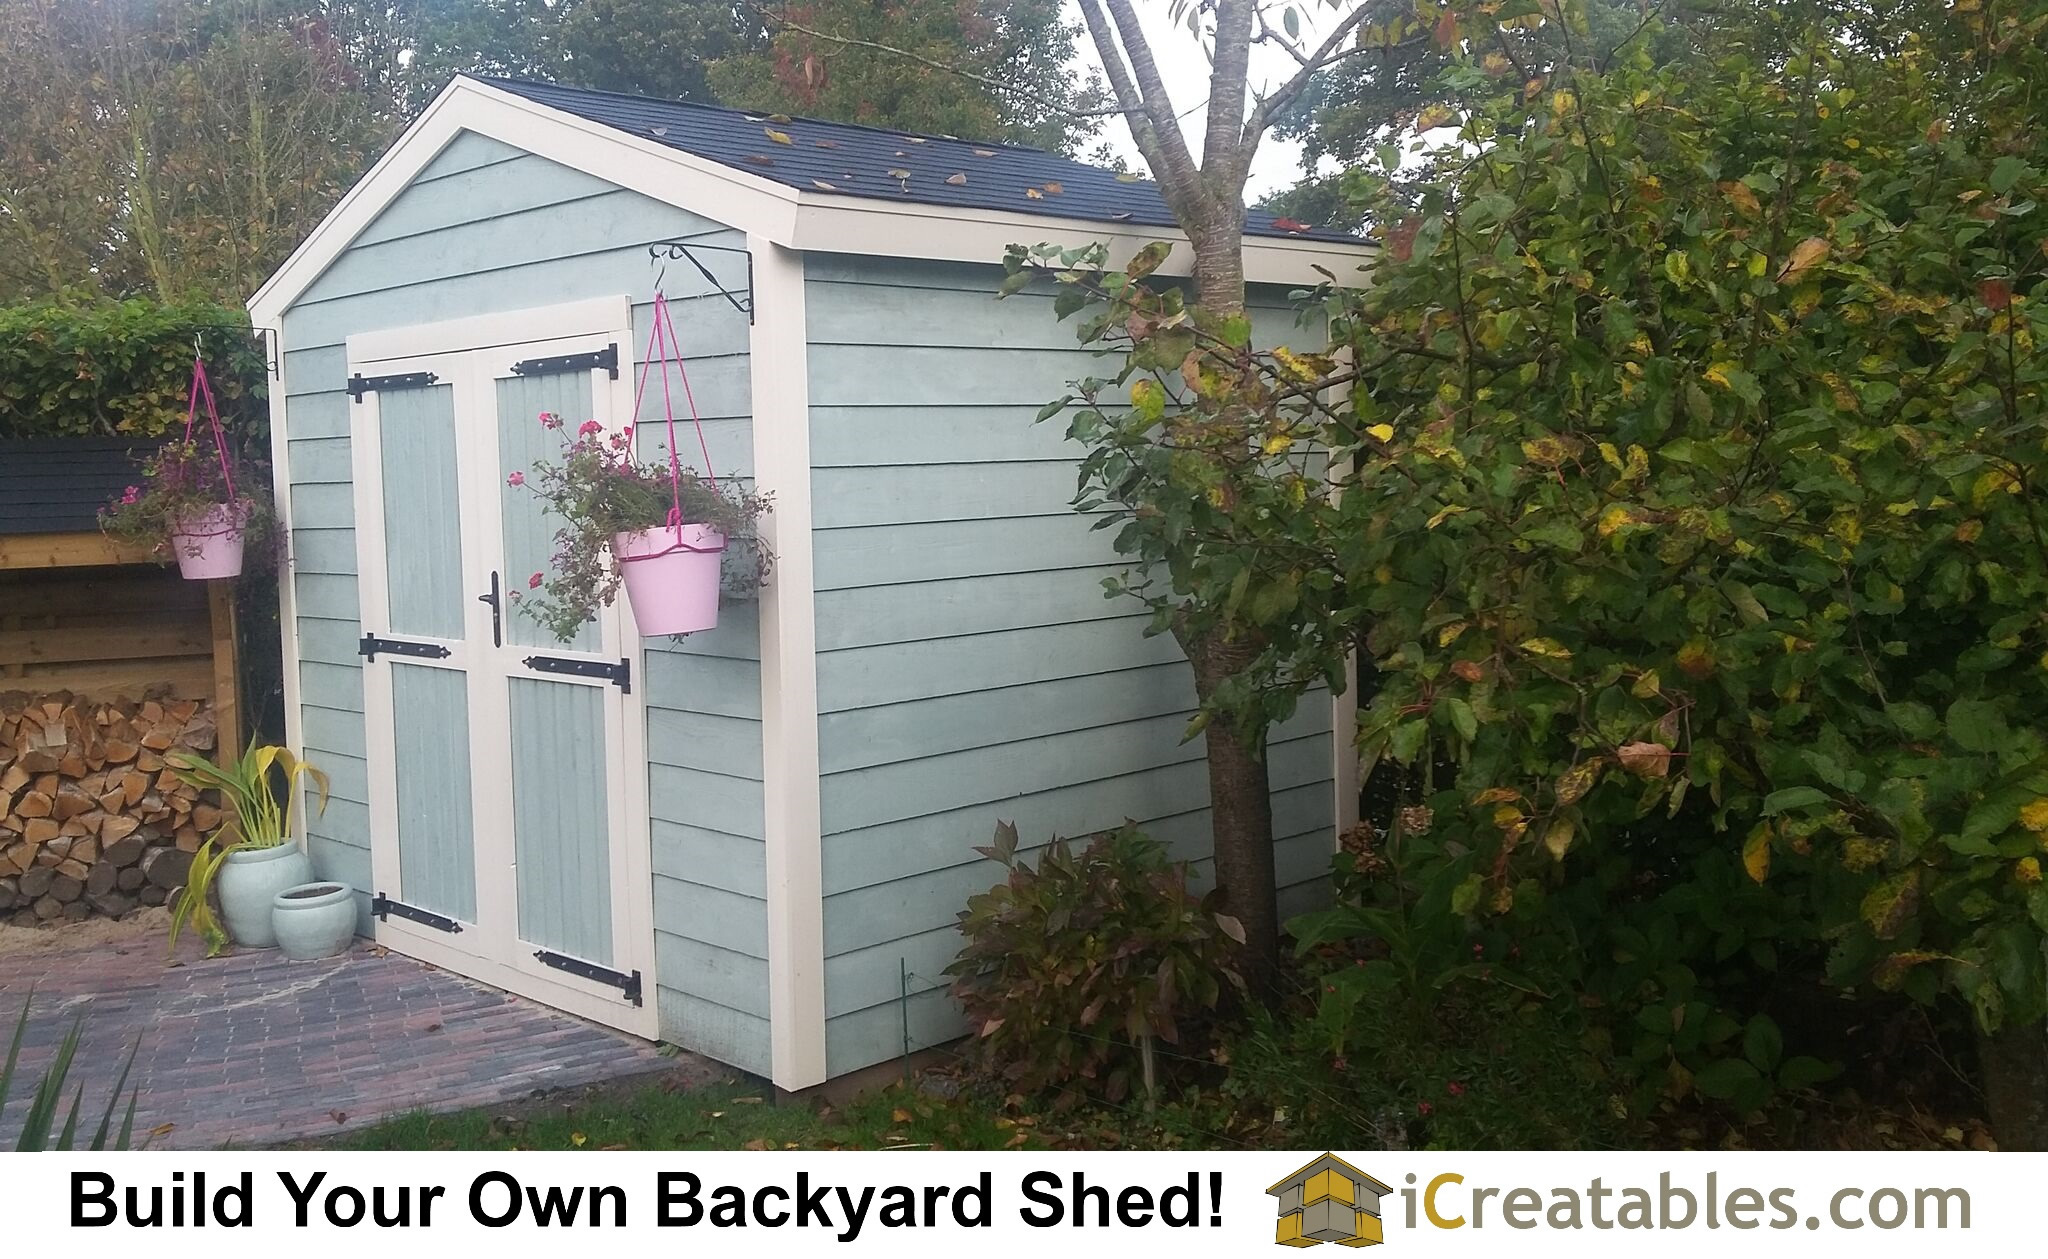 2400x3000 Garden Shed plans (8x10 in imperial measurement) built and beautifully finished in the Netherlands.